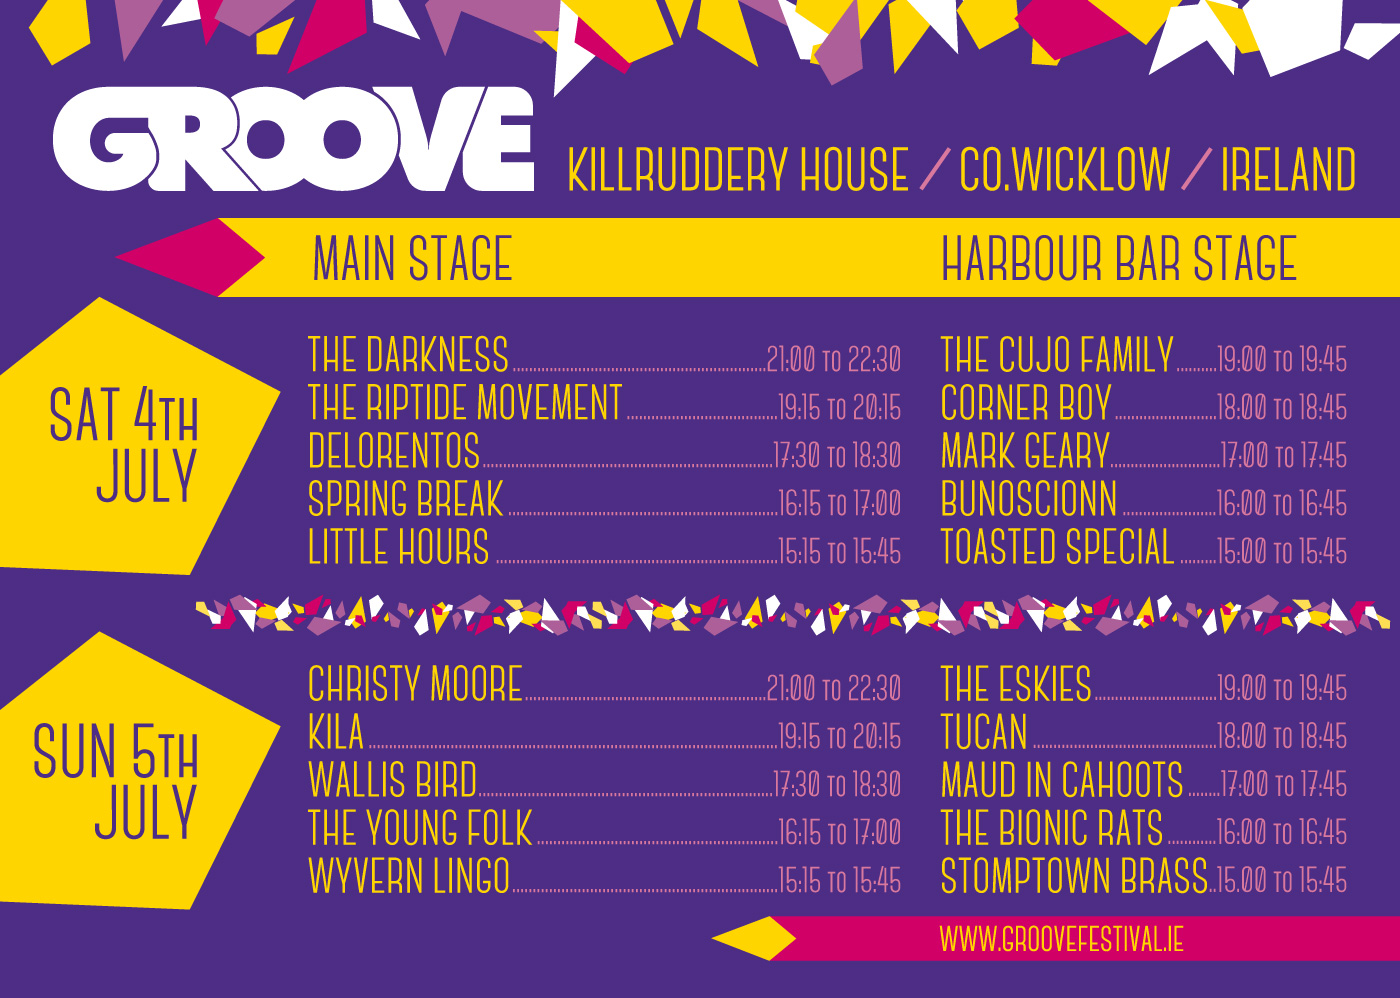 Groove Festival 2015 stage times